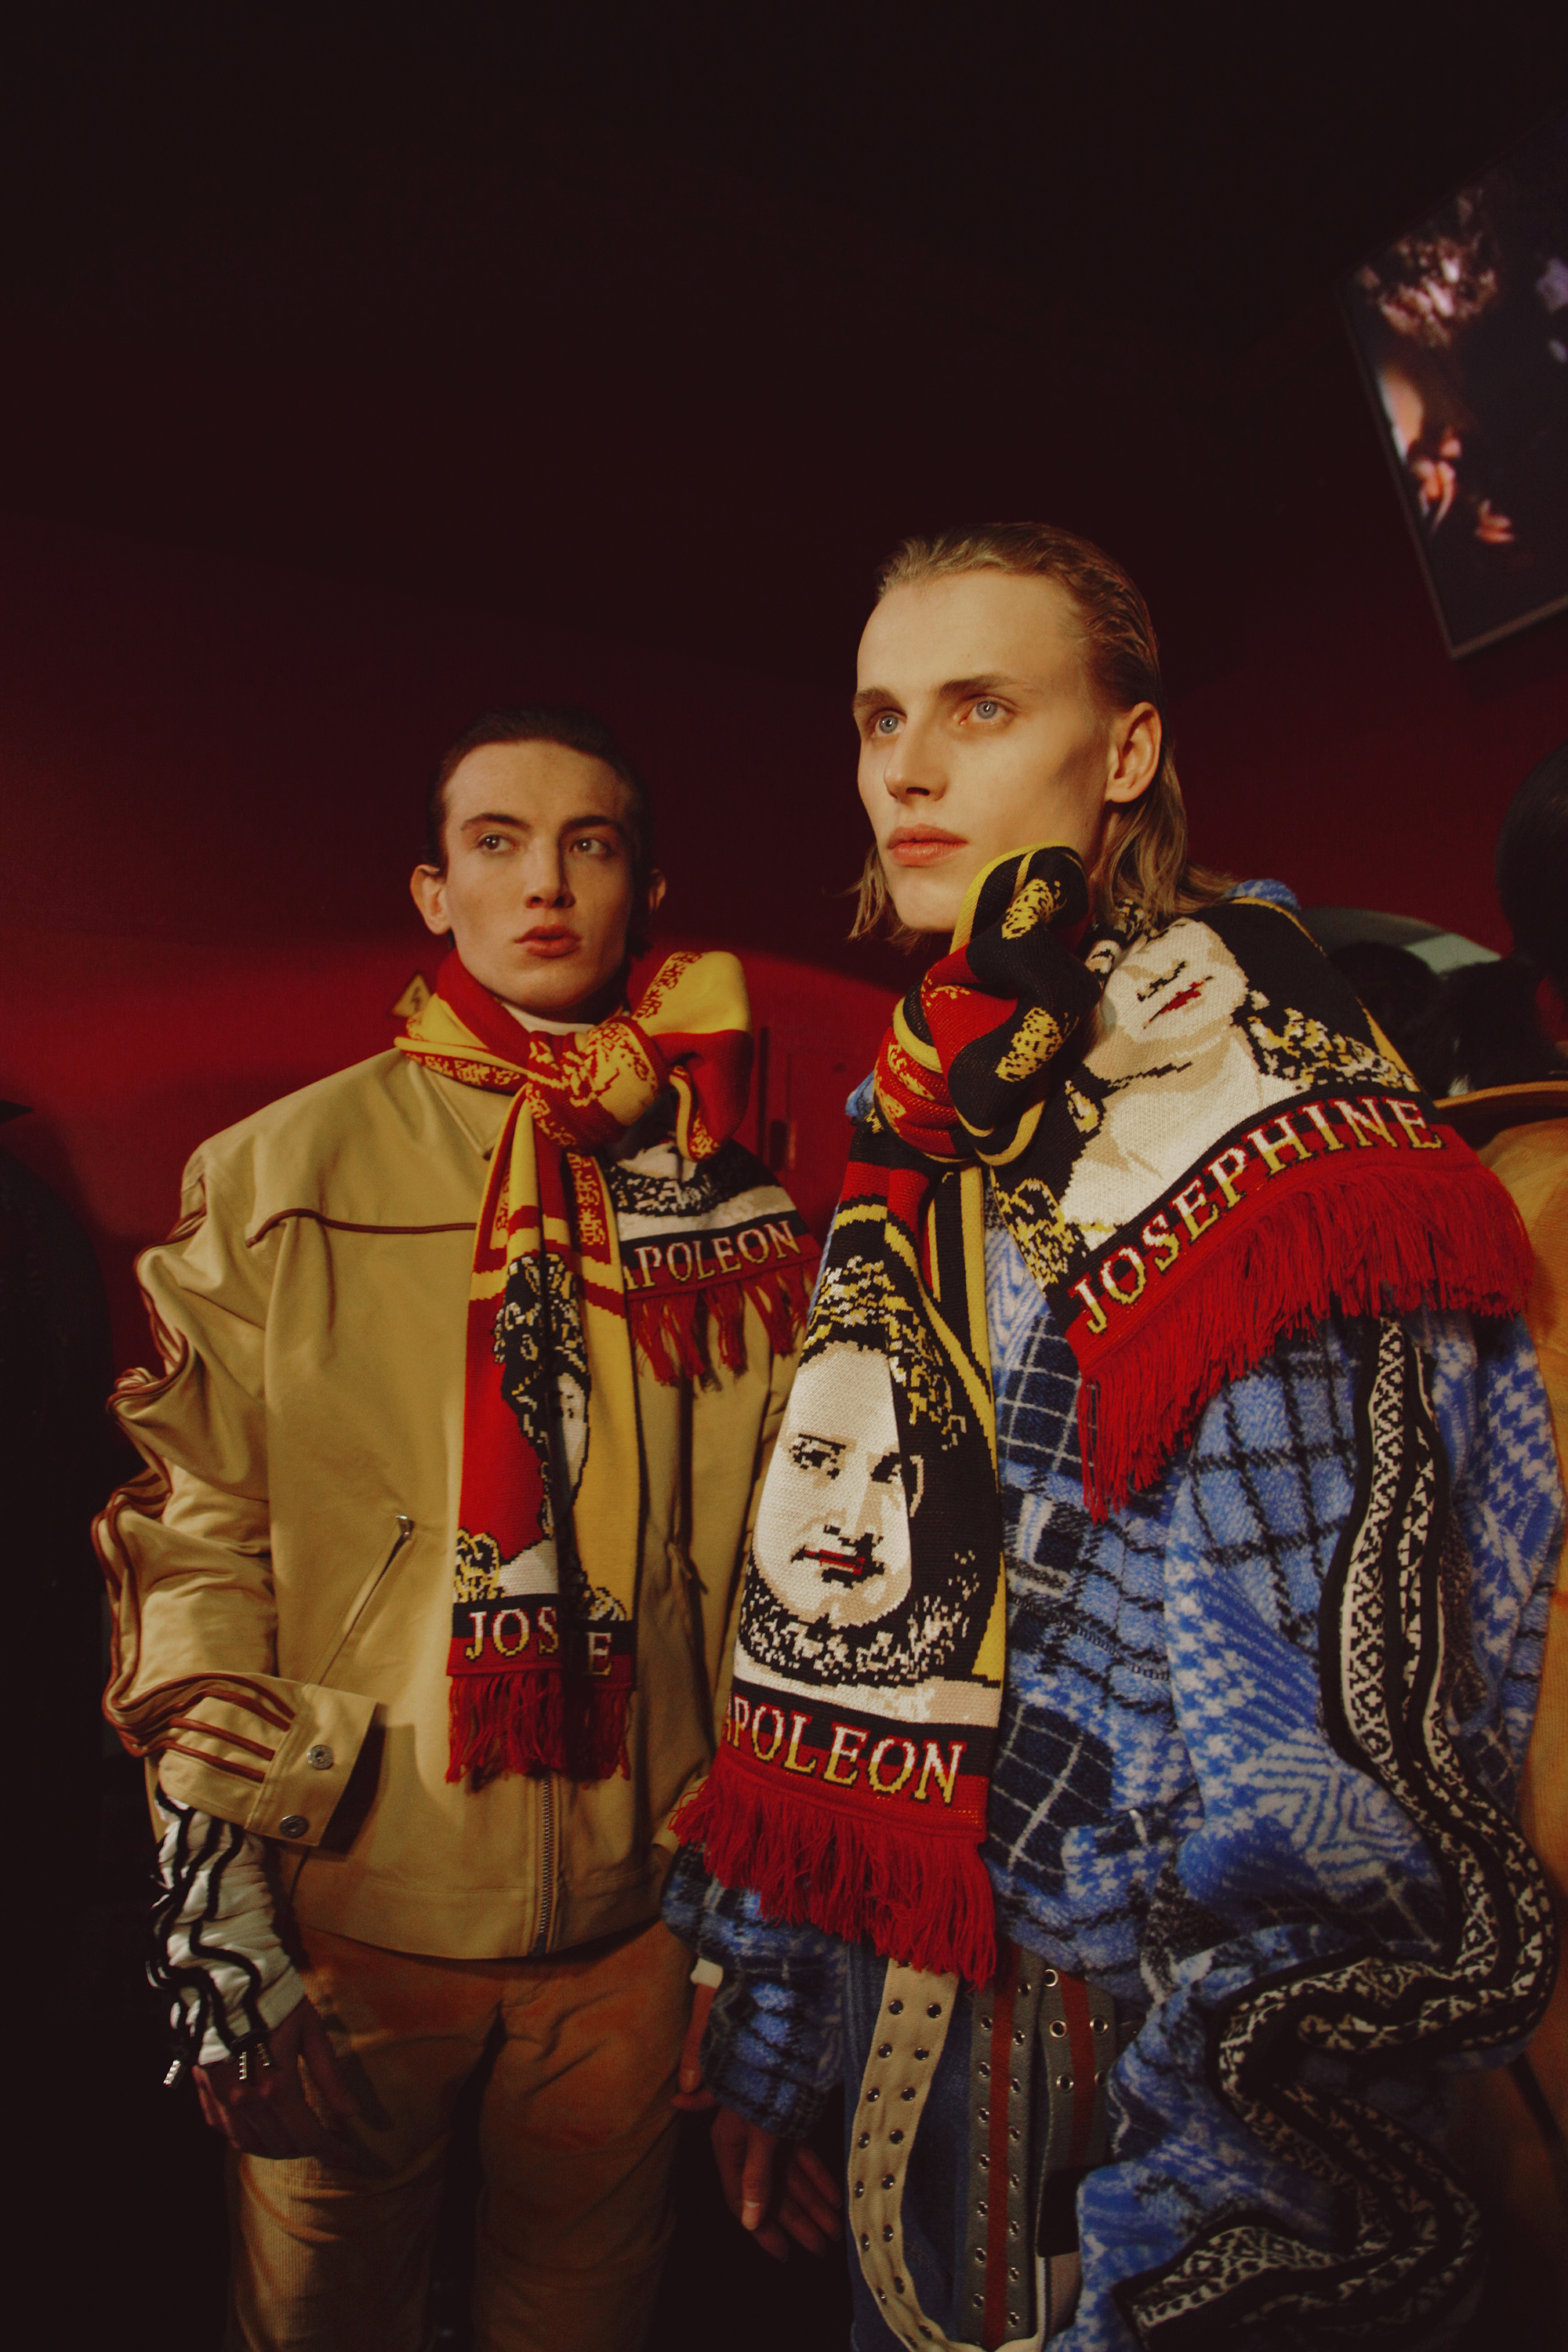 BACKSTAGE AT Y/PROJECT MEN FALL WINTER 2017/18 PARIS